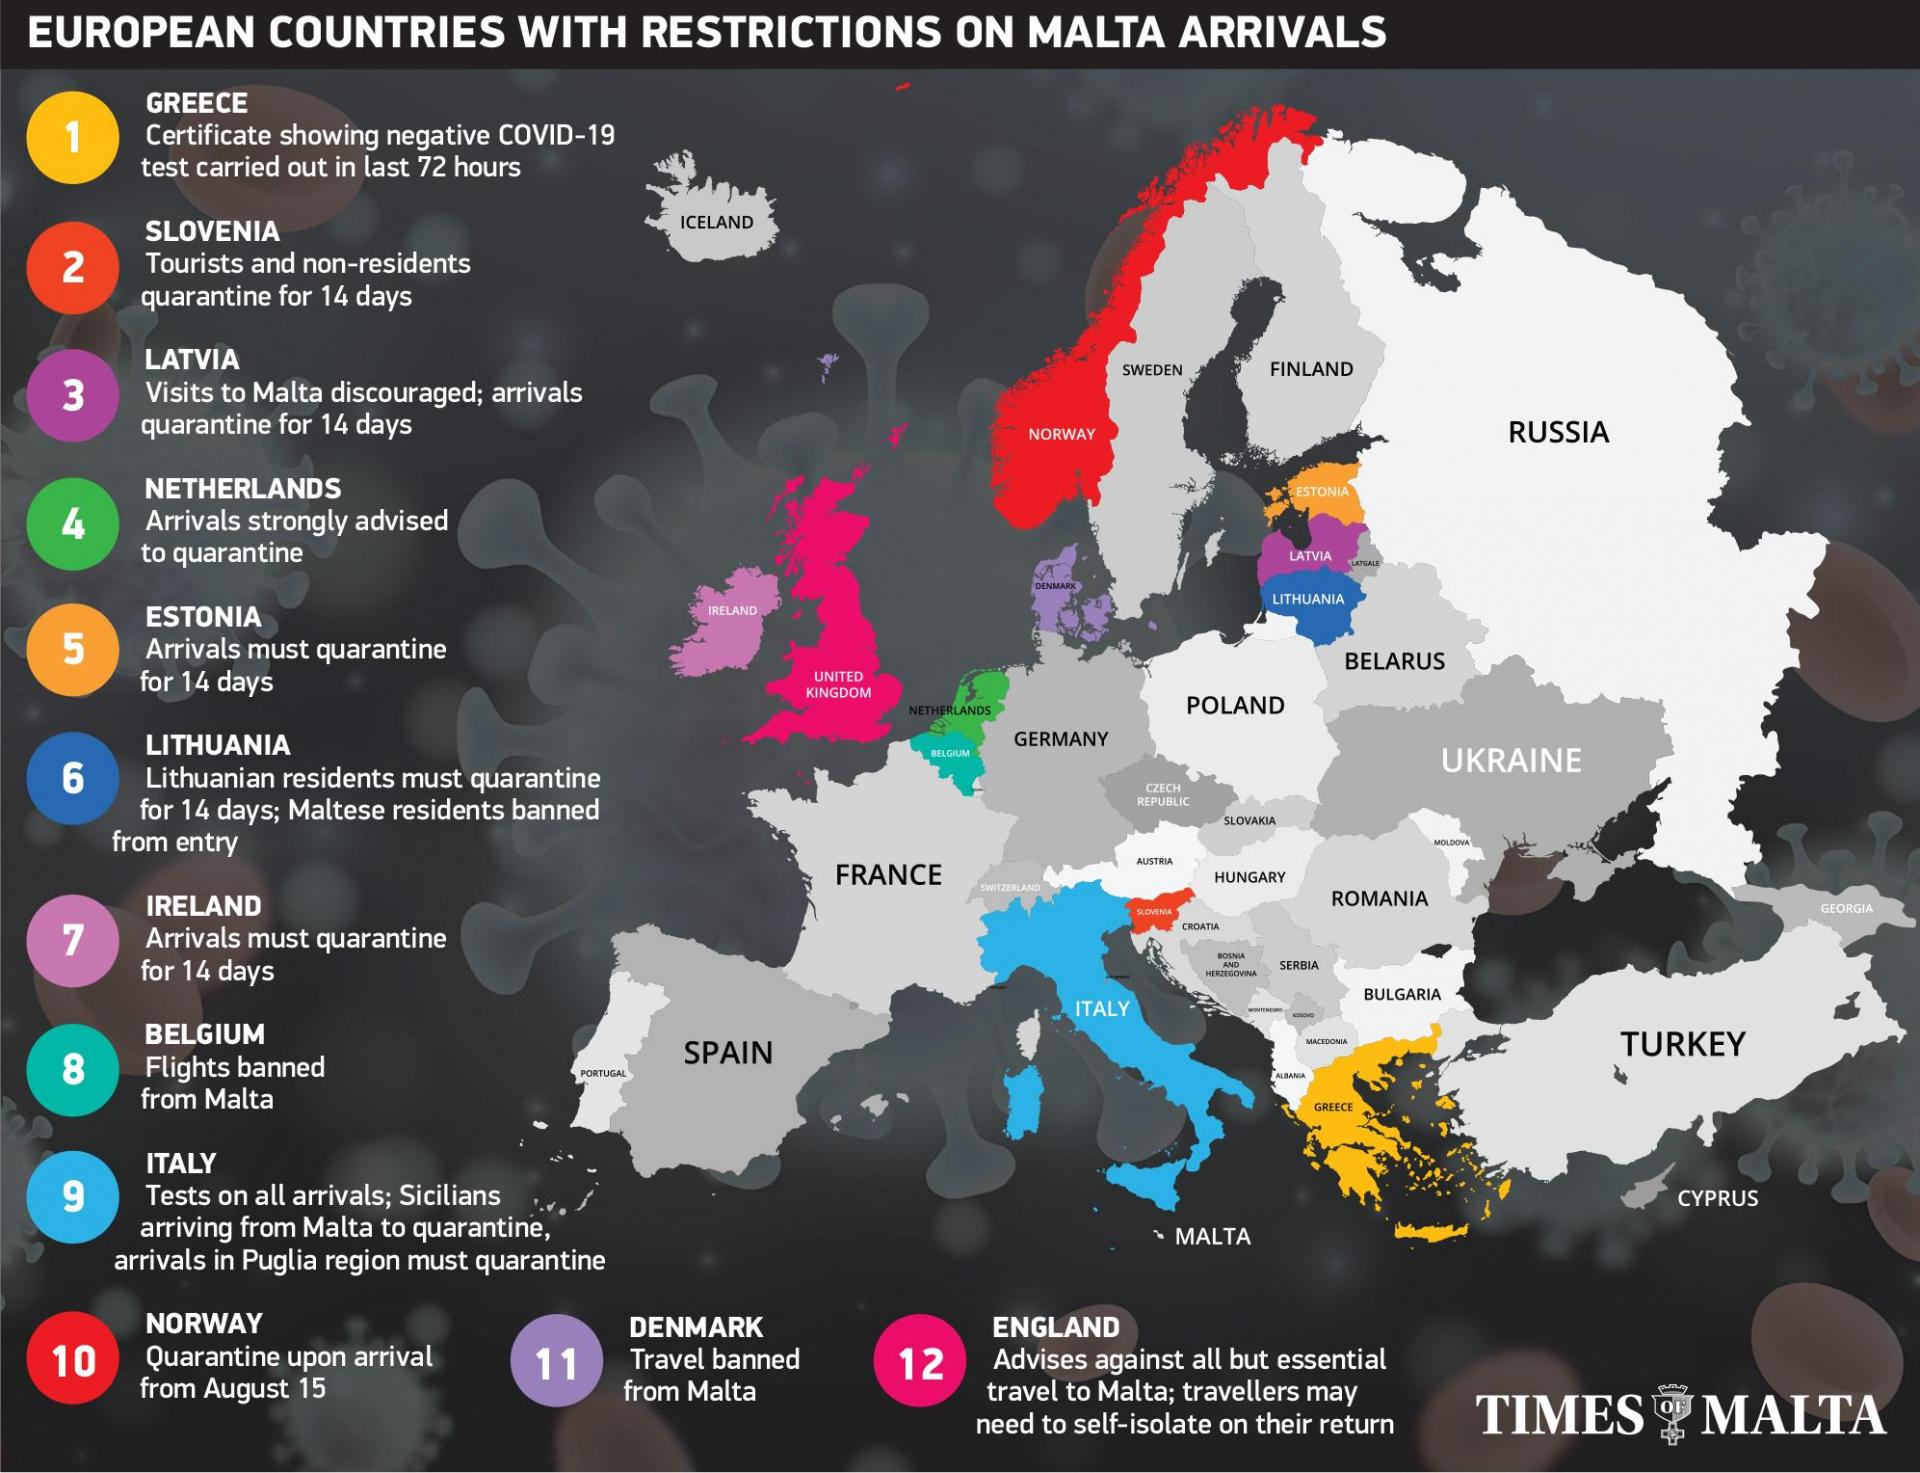 European countries with restrictions on Malta arrivals. Map: Christian Busuttil